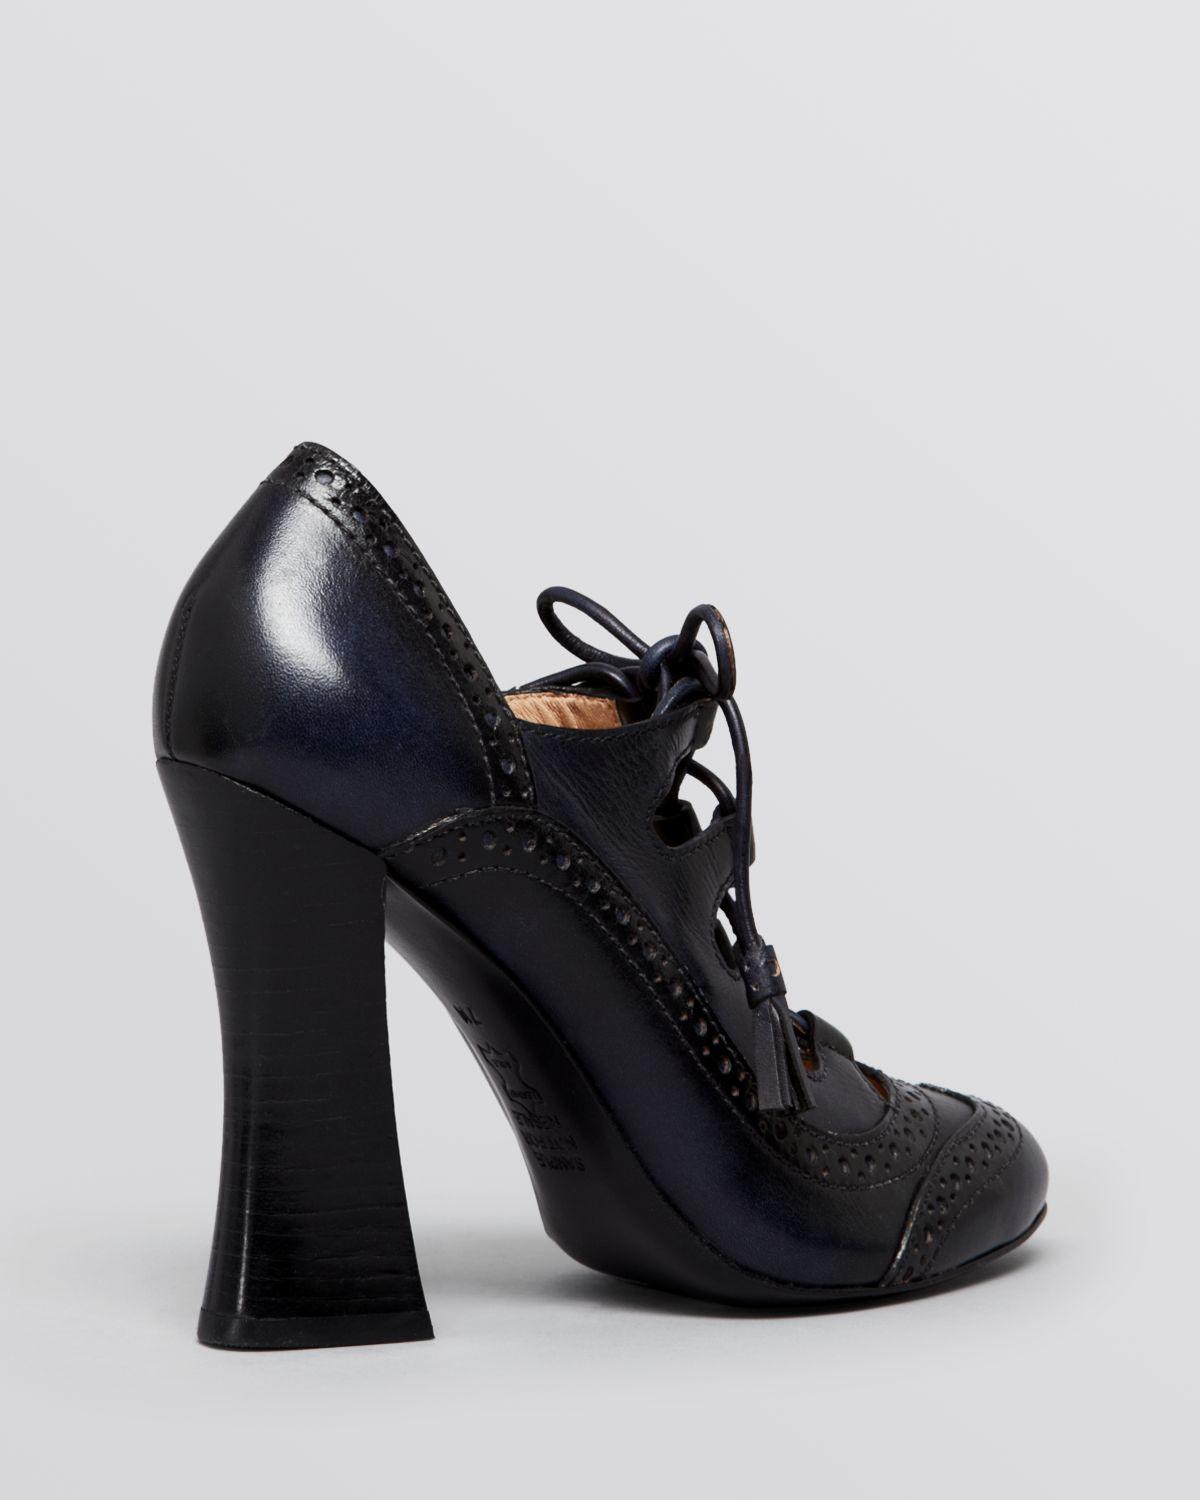 Tory Burch Lace Up Ghillie Oxford Pumps Astrid High Heel